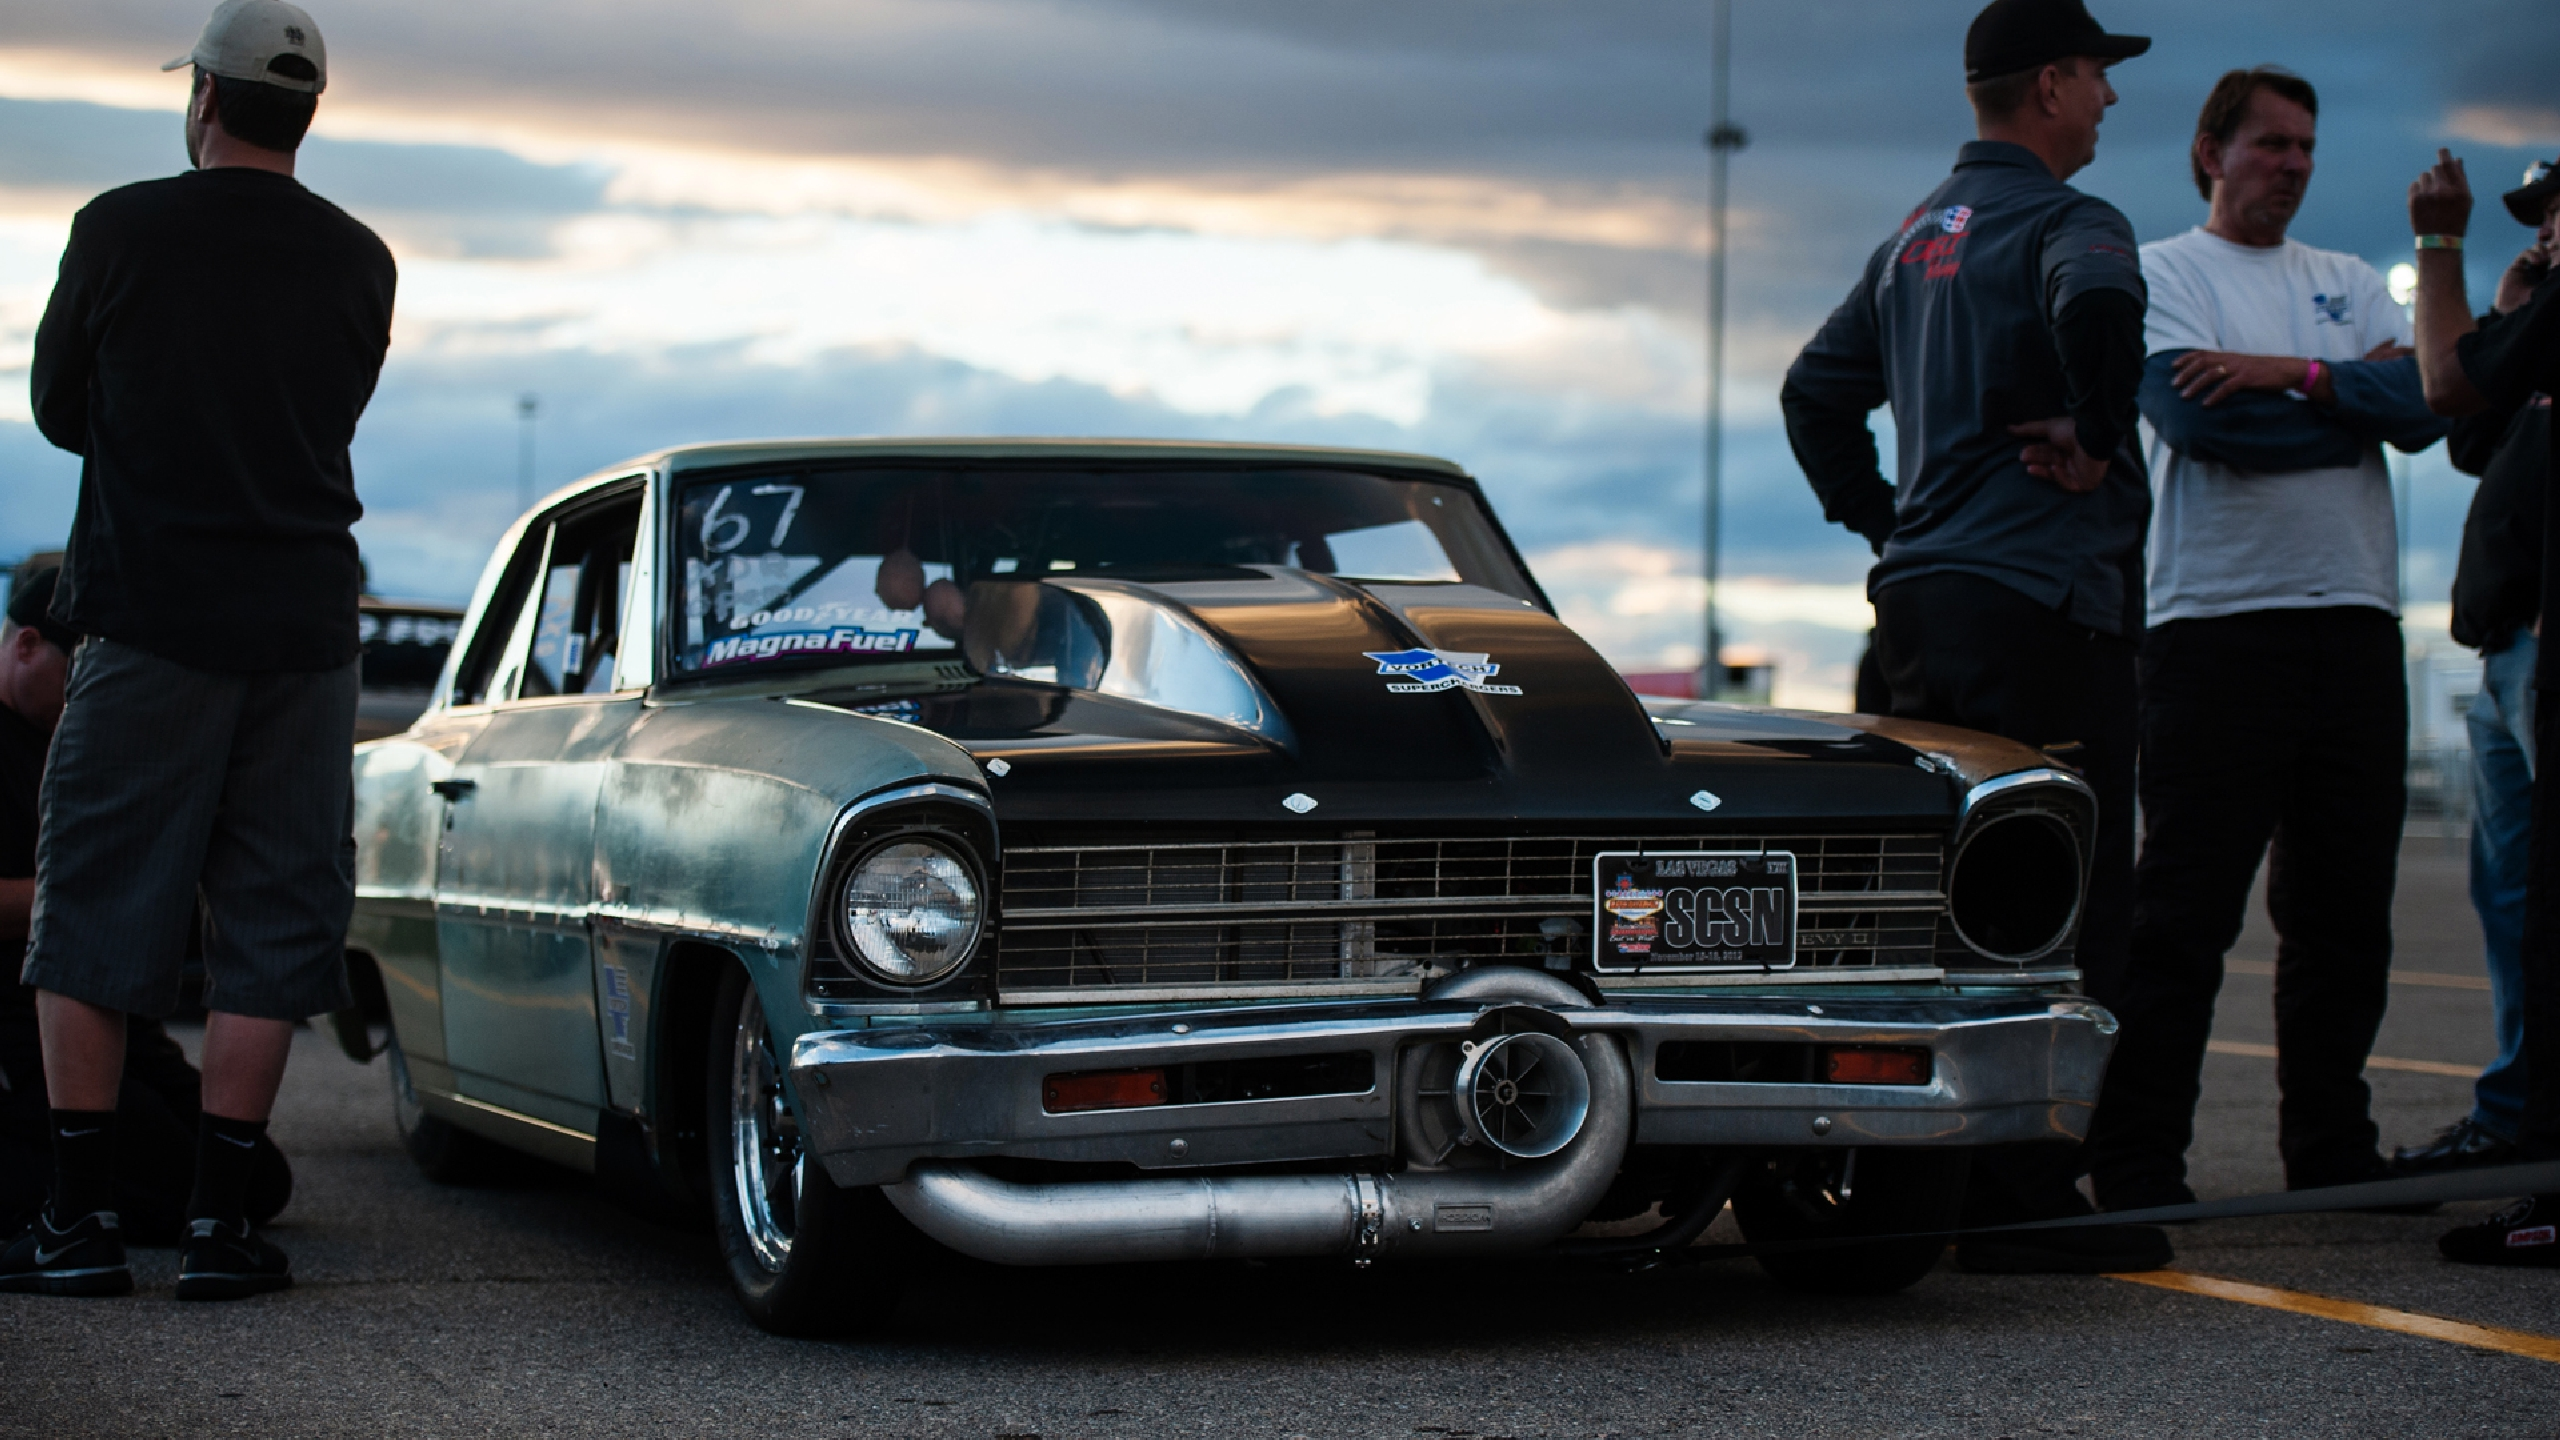 Chevrolet Full HD Wallpaper And Background Image